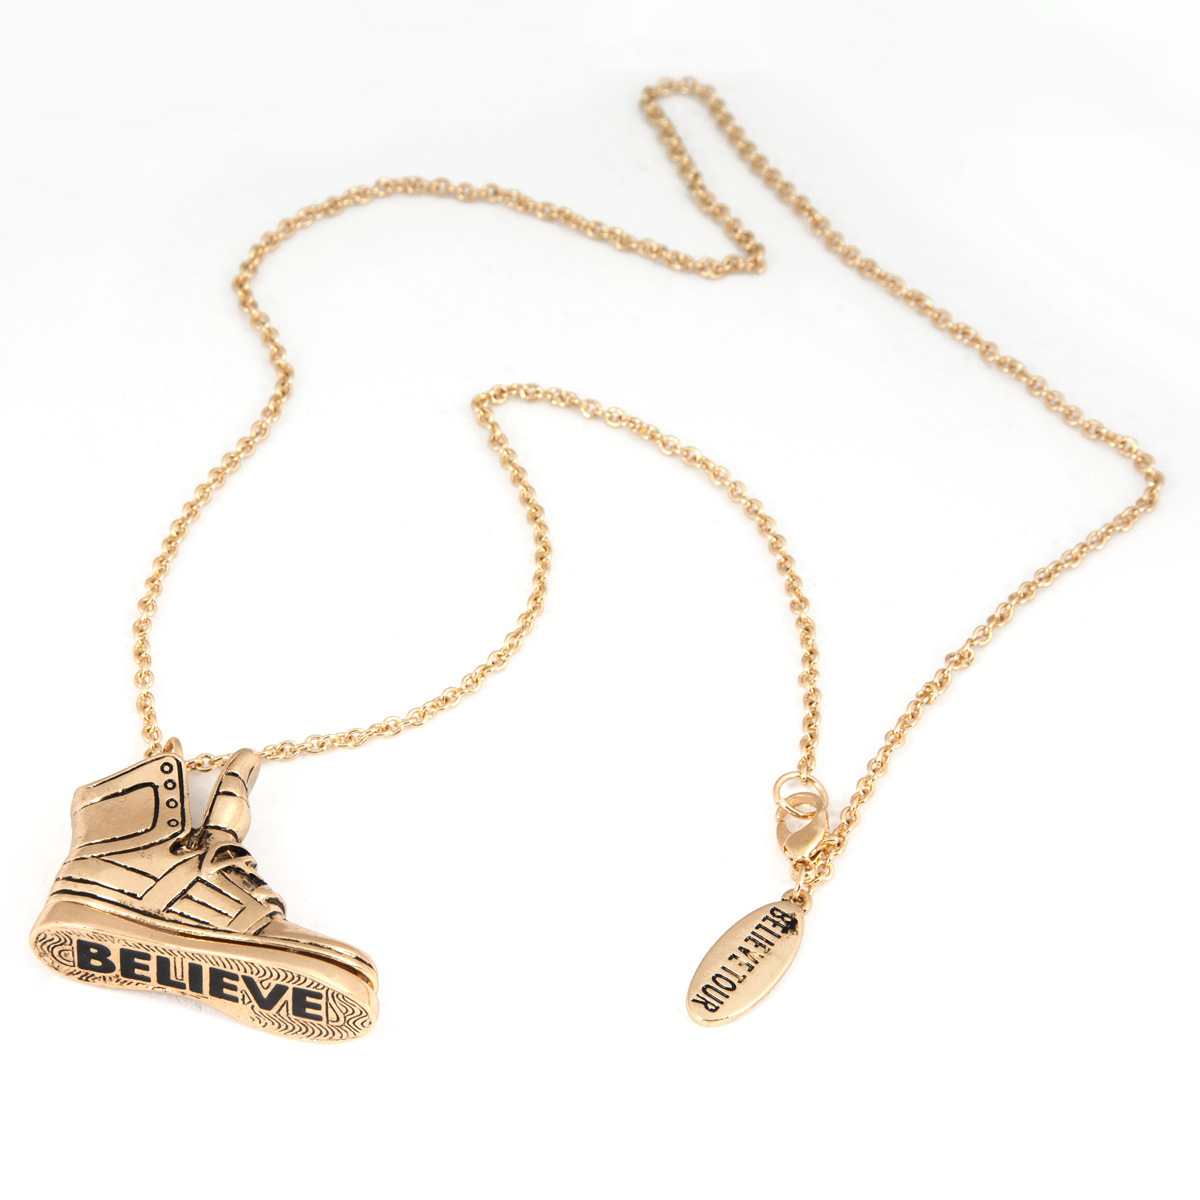 Justin Bieber Jewelry  | Justin Bieber Sneakers Necklace | Shop the Justin Bieber Official Store